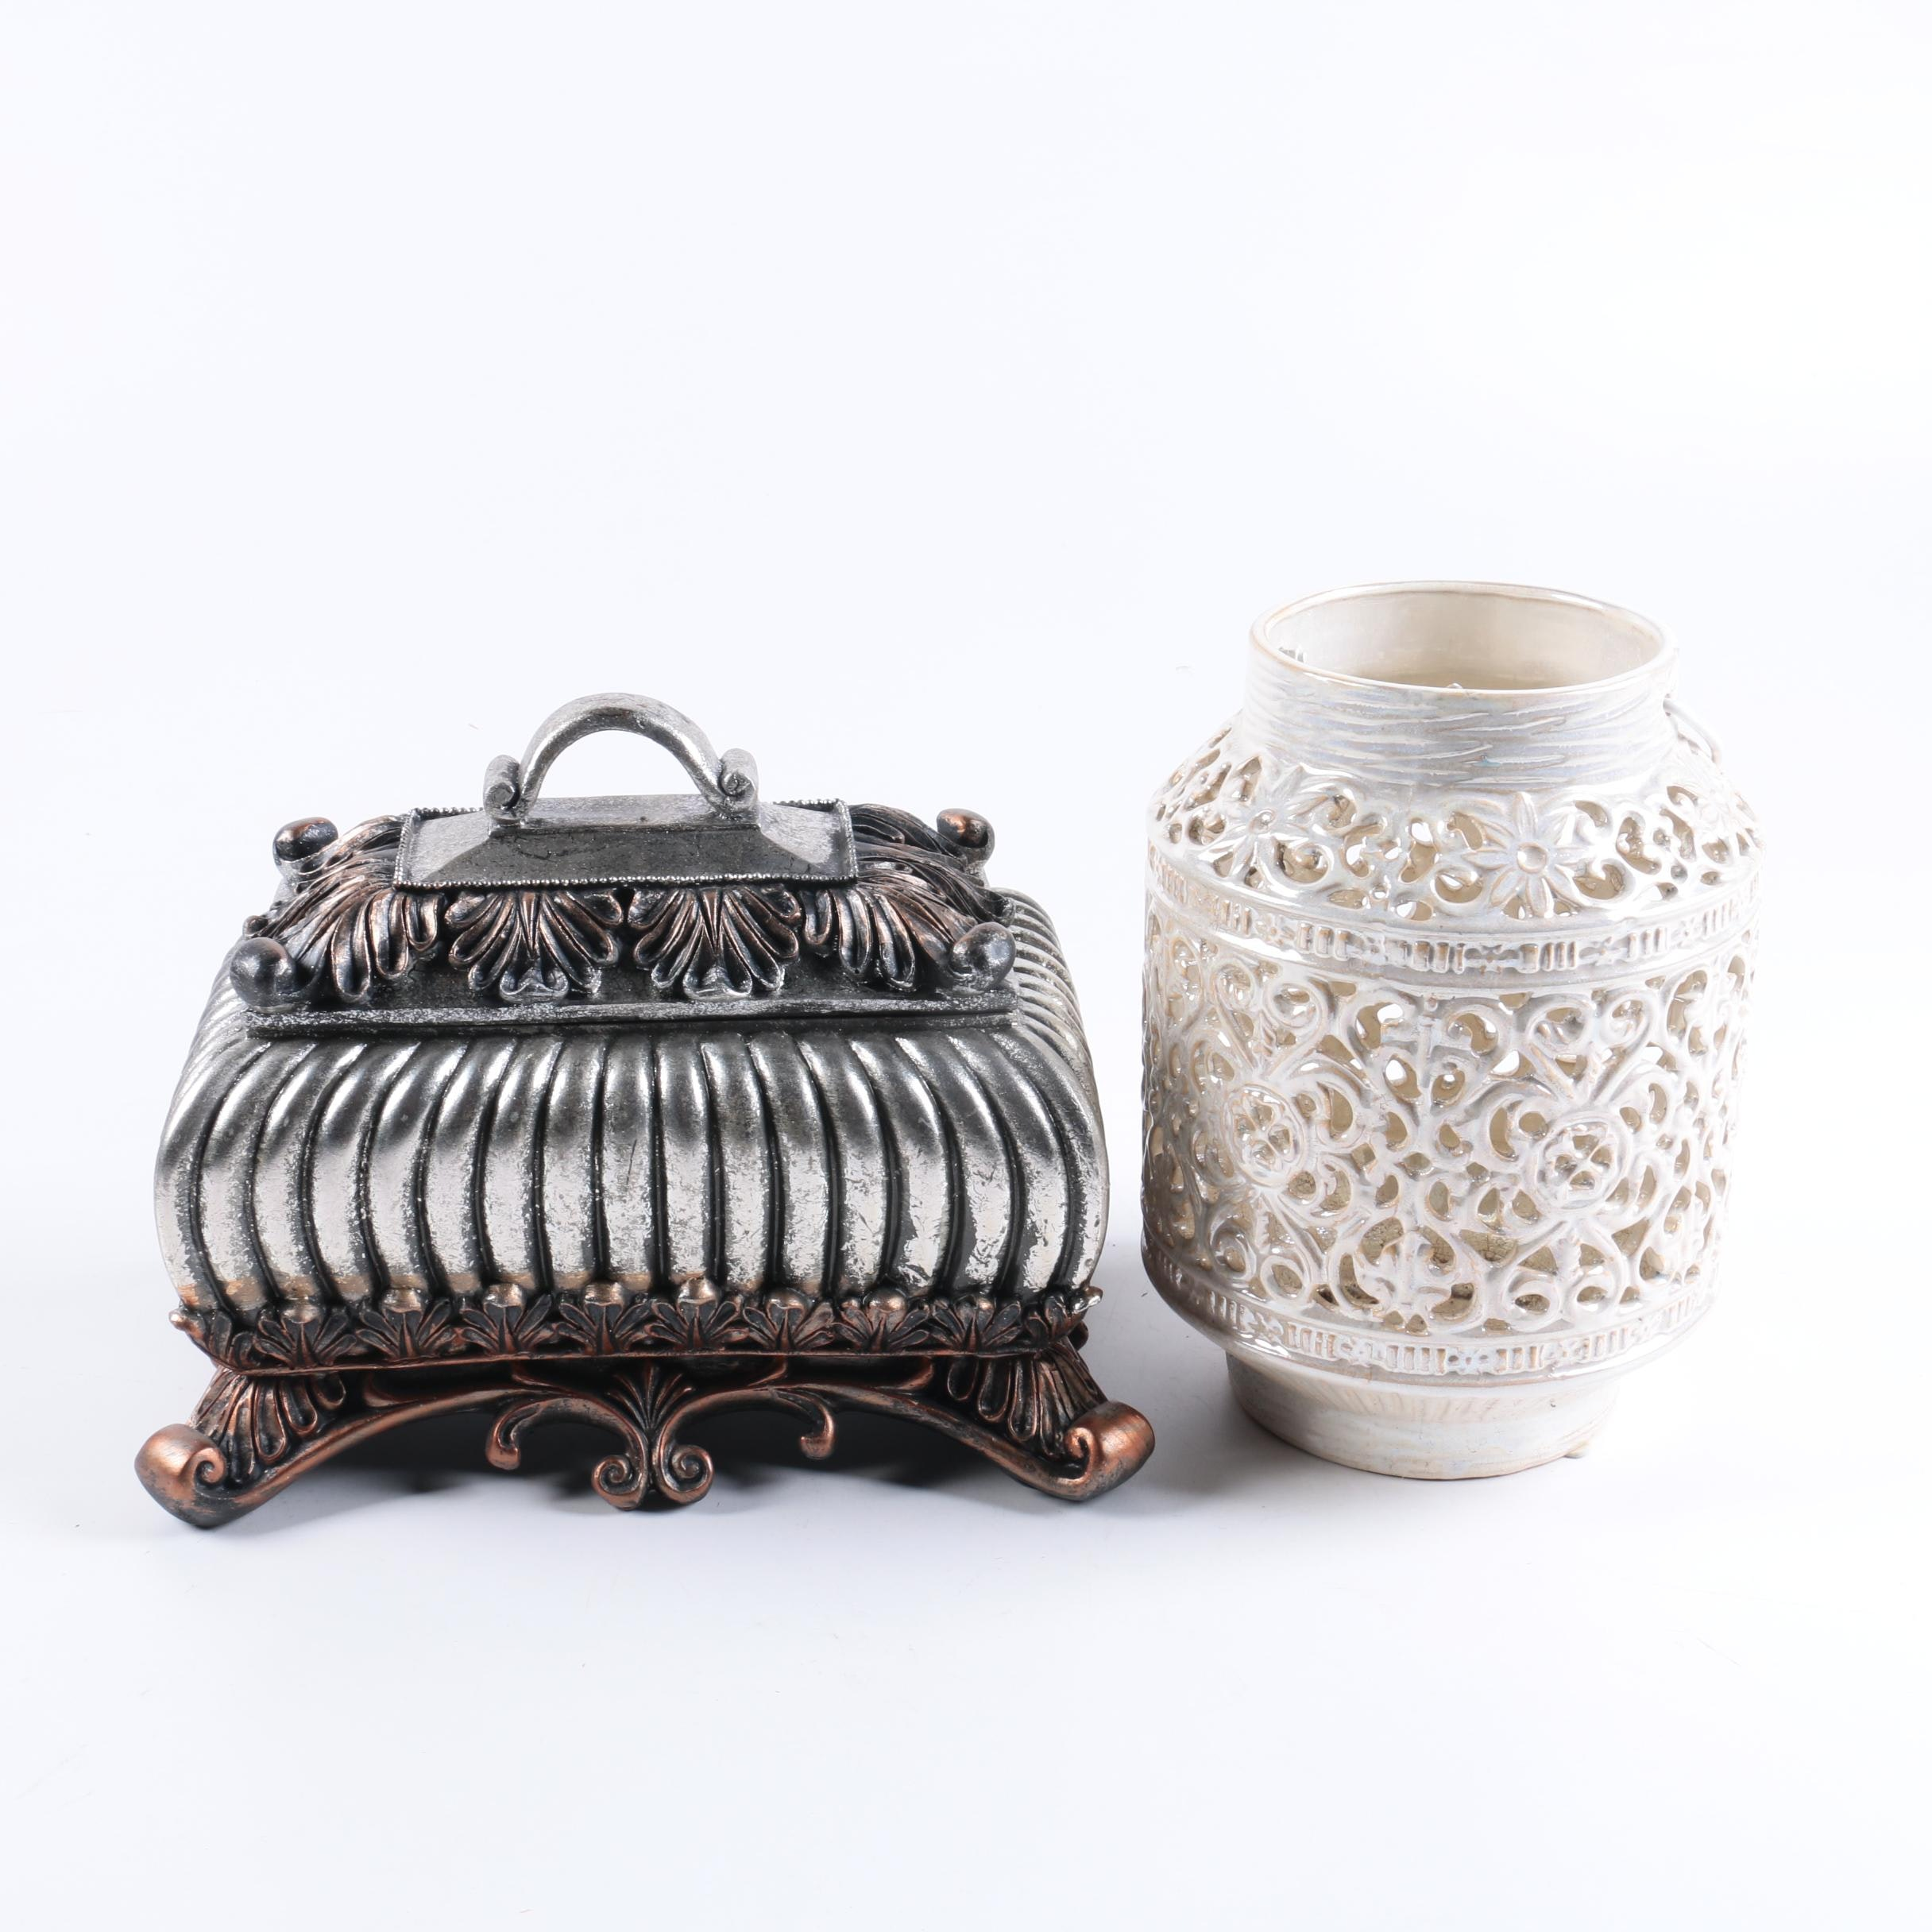 Filigree Ceramic Candle Holder and Ornate Resin Box